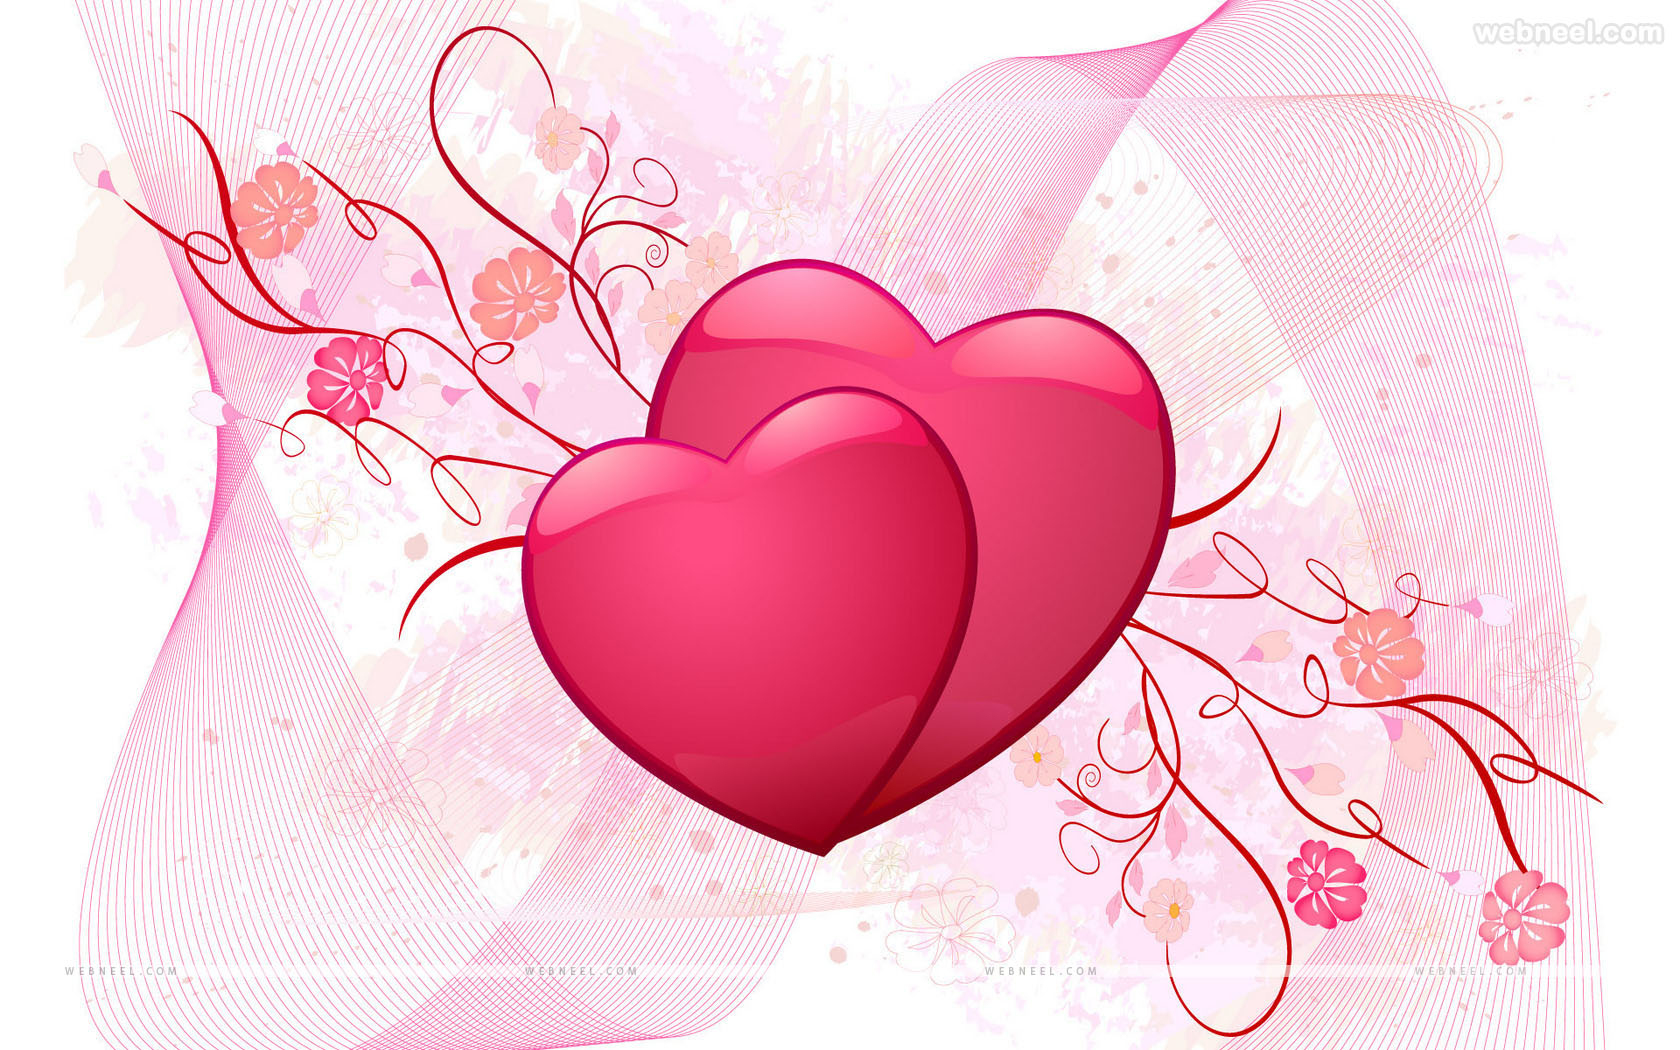 30 beautiful valentines day wallpapers for your desktop - Valentine s day flower wallpaper ...